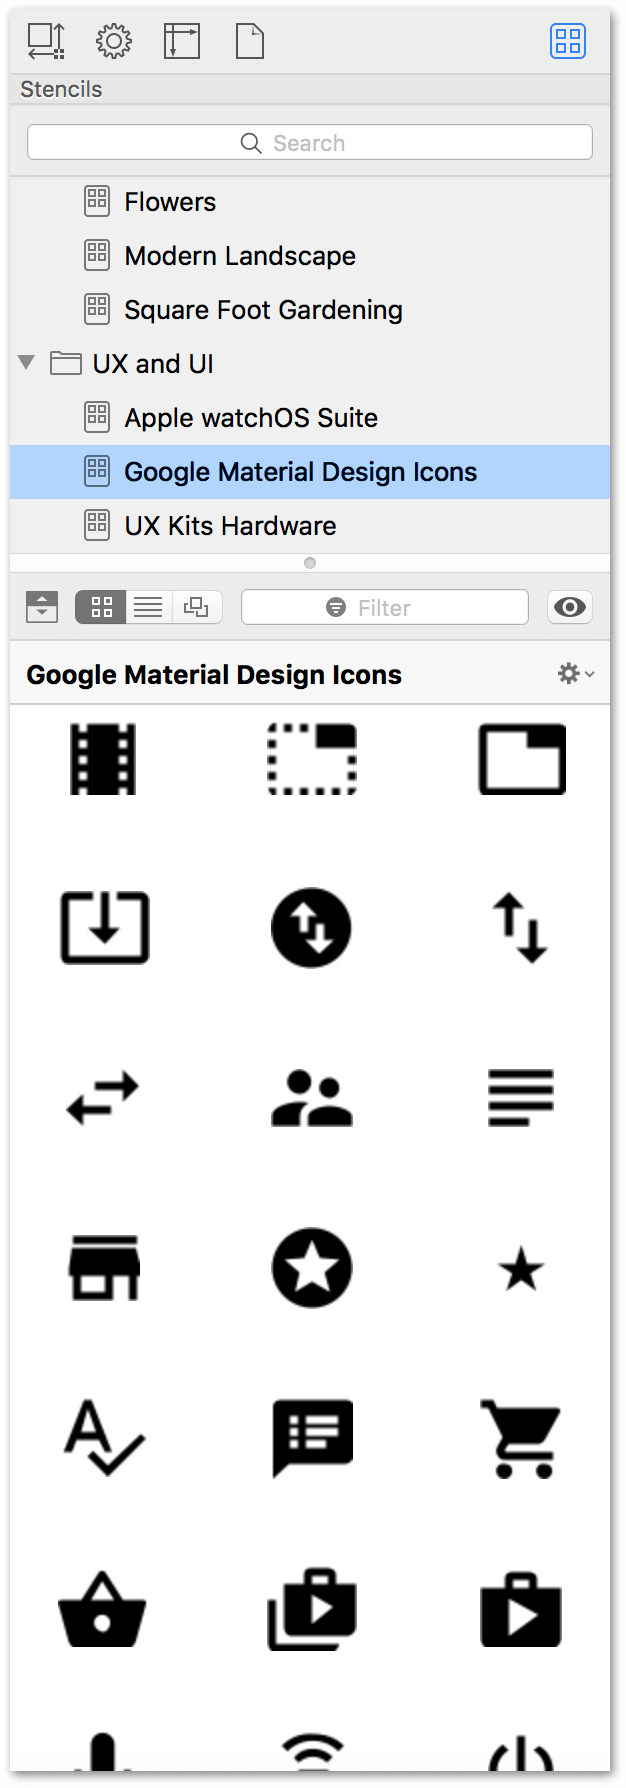 The Stencils Browser as shown in the right sidebar